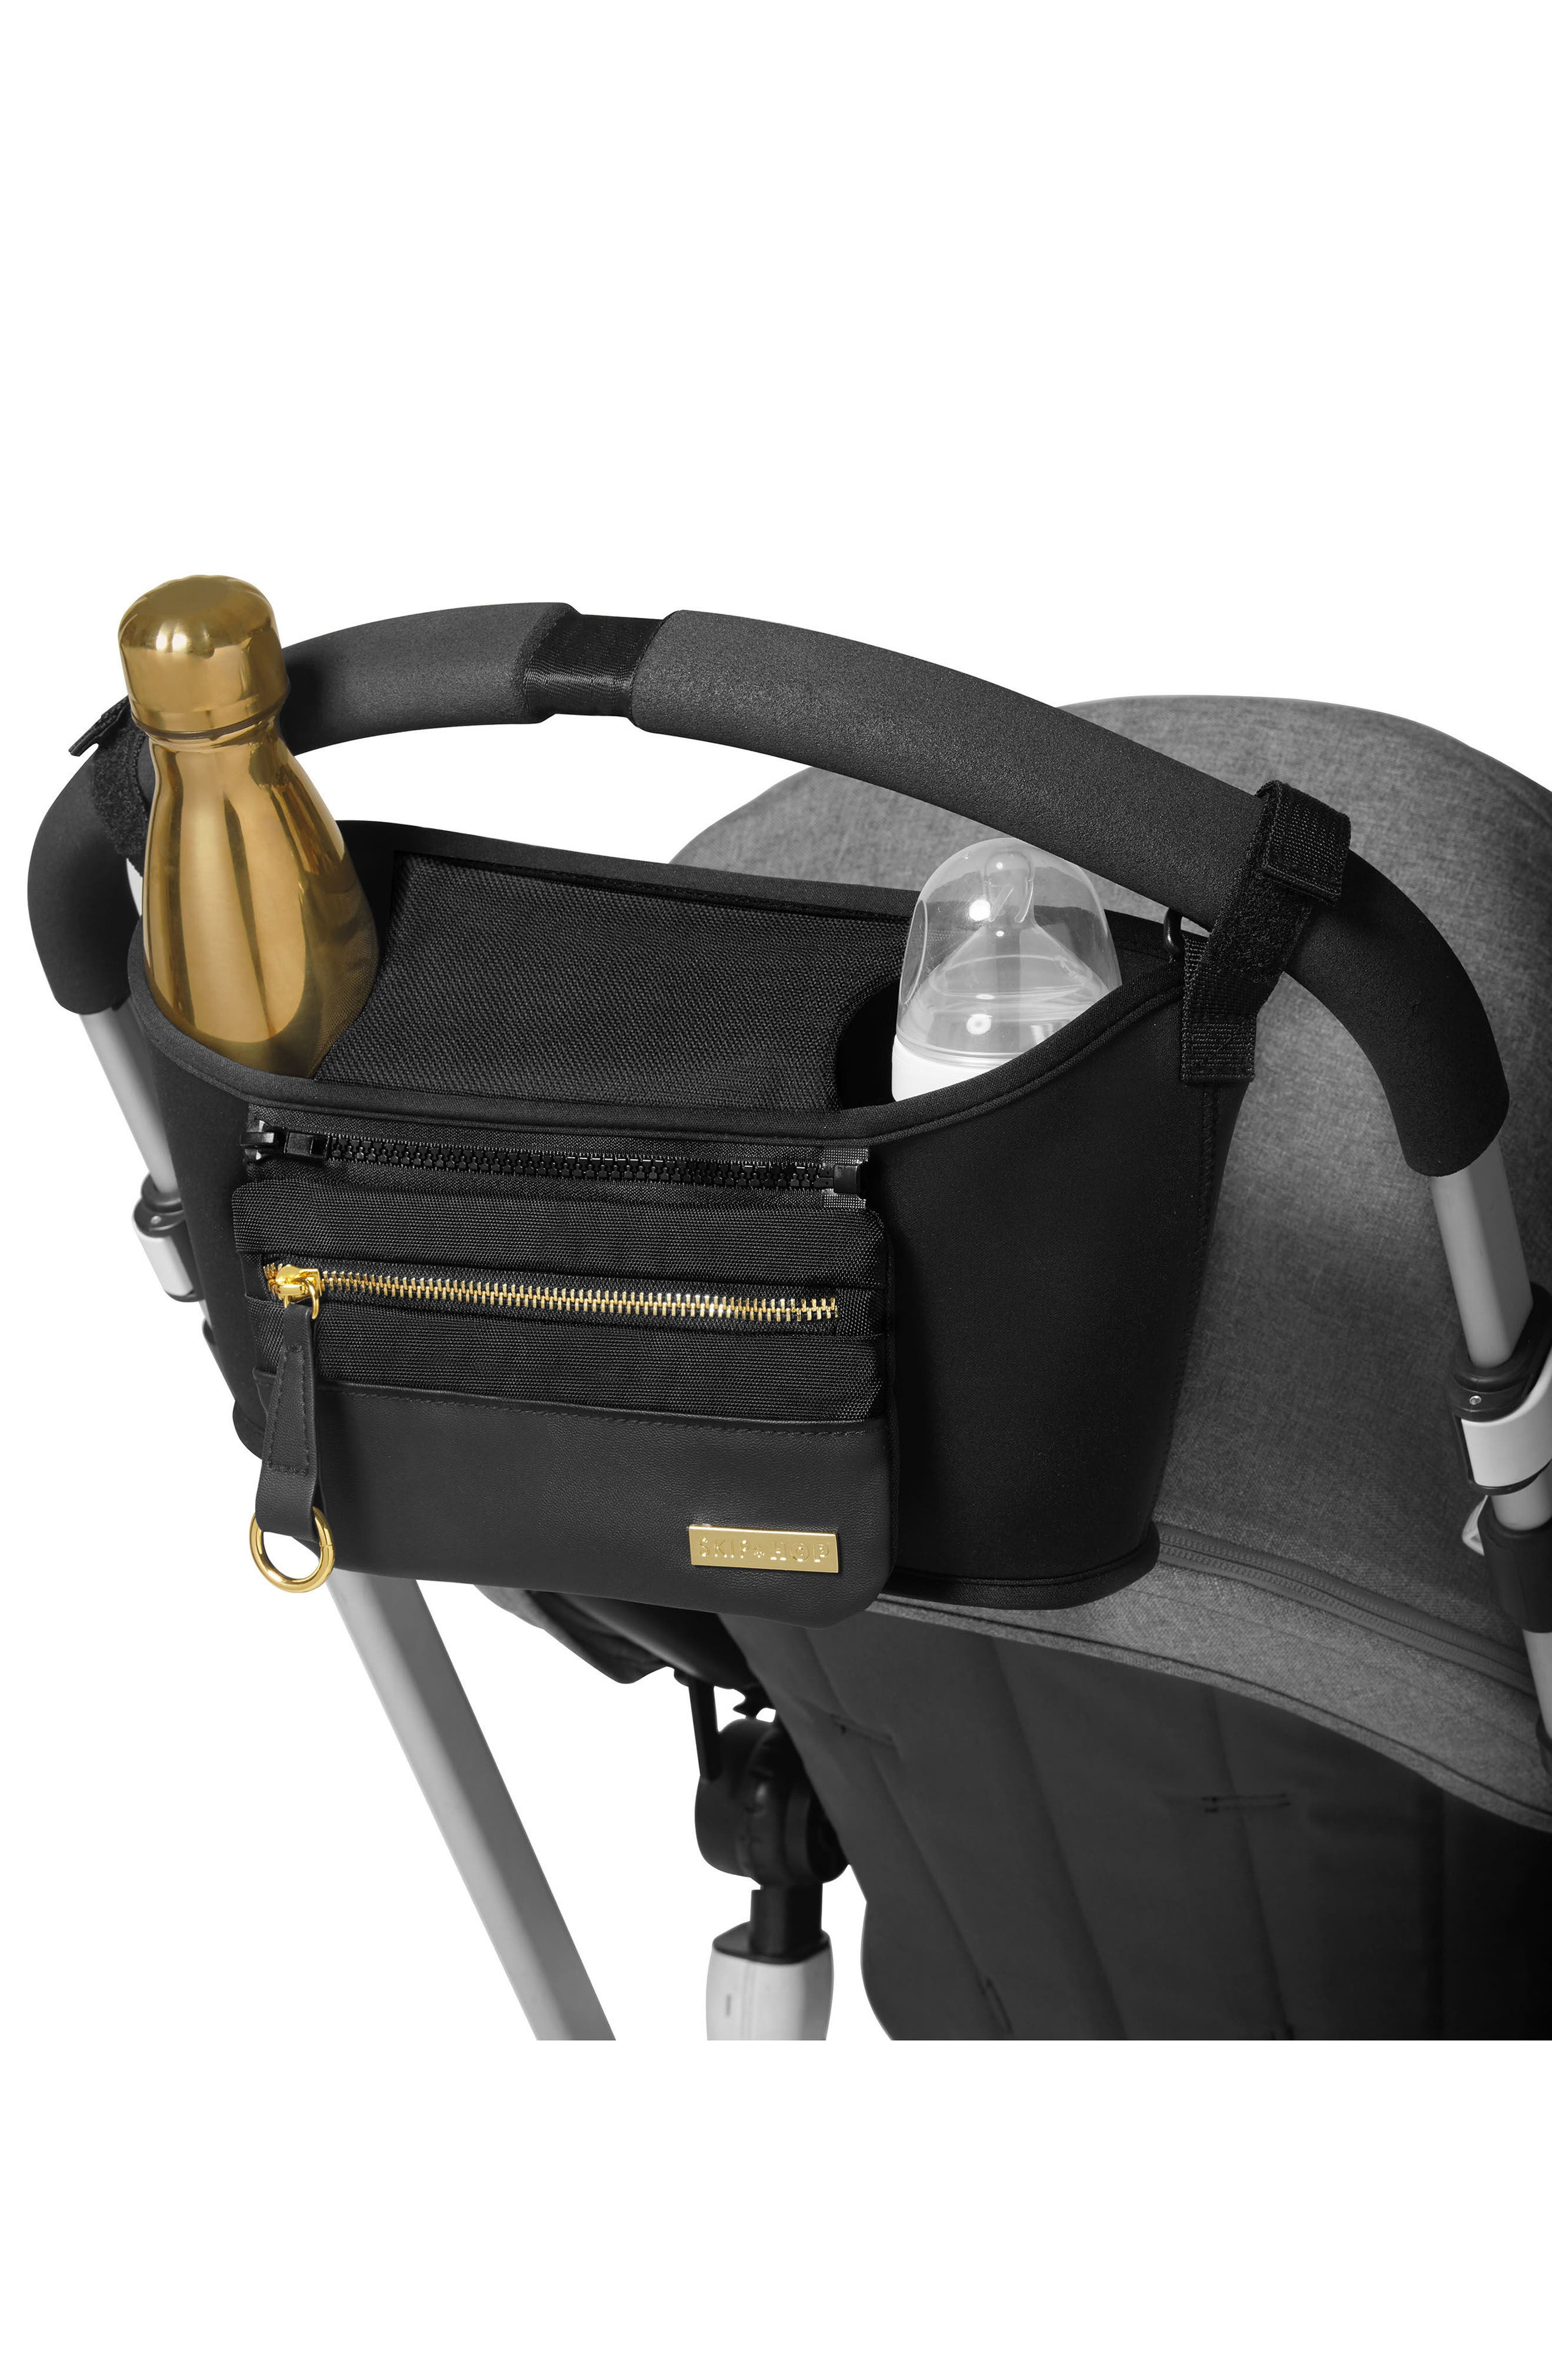 Grab & Go Luxe Stroller Organizer,                             Alternate thumbnail 6, color,                             BLACK